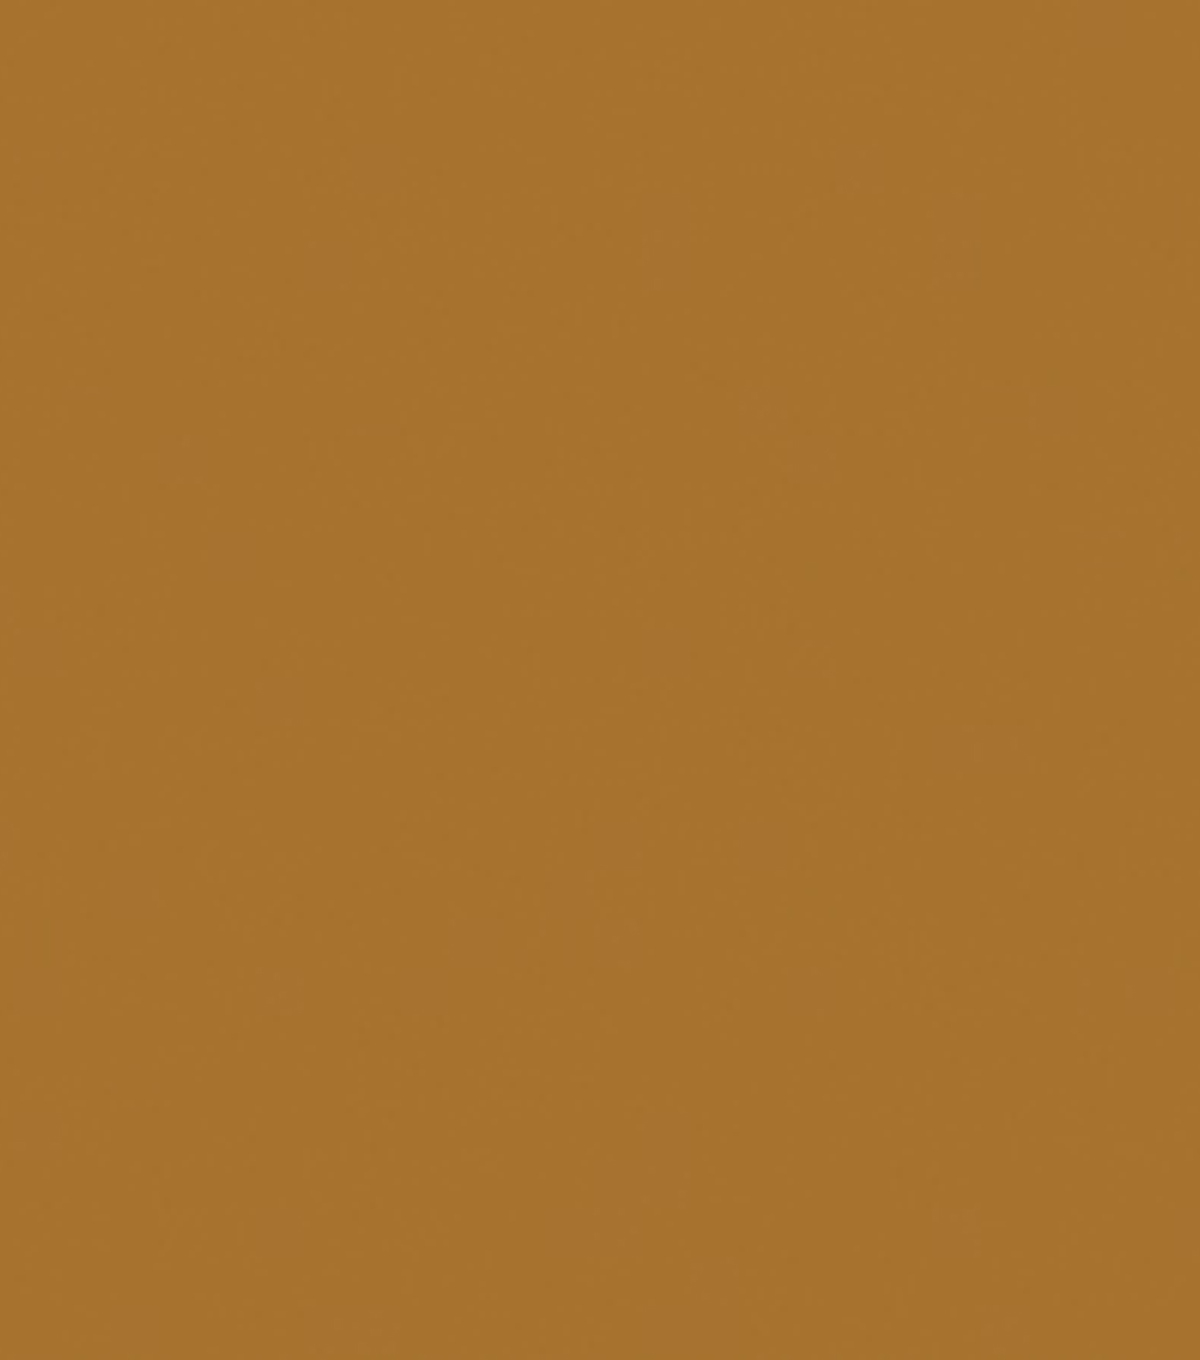 Ceramcoat Acrylic Paint 8oz, Spice Brown